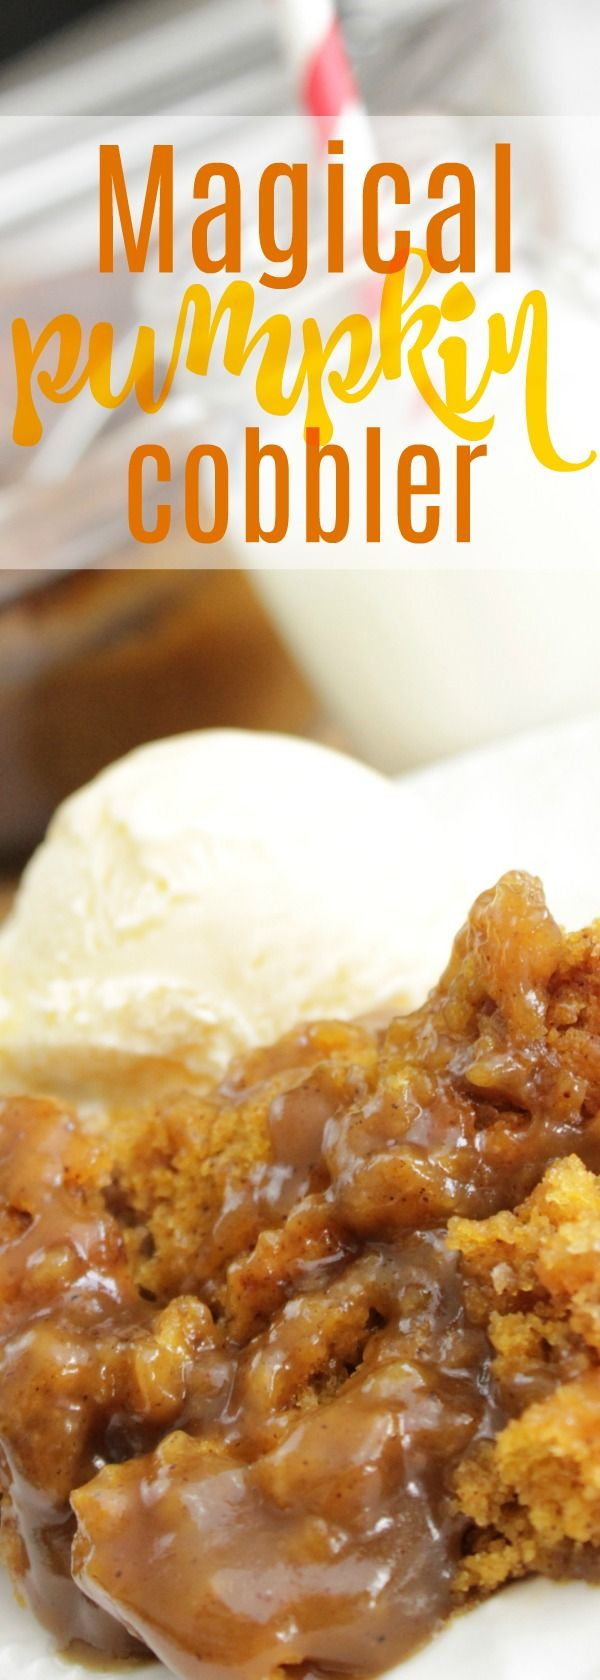 Looking for awesome pumpkin desserts? Easy cake with pumpkin ice cream topping is the way to go! This is a mix of pumpkin bread and pumpkin pie spice. #desserts #pumpkin #recipe #food